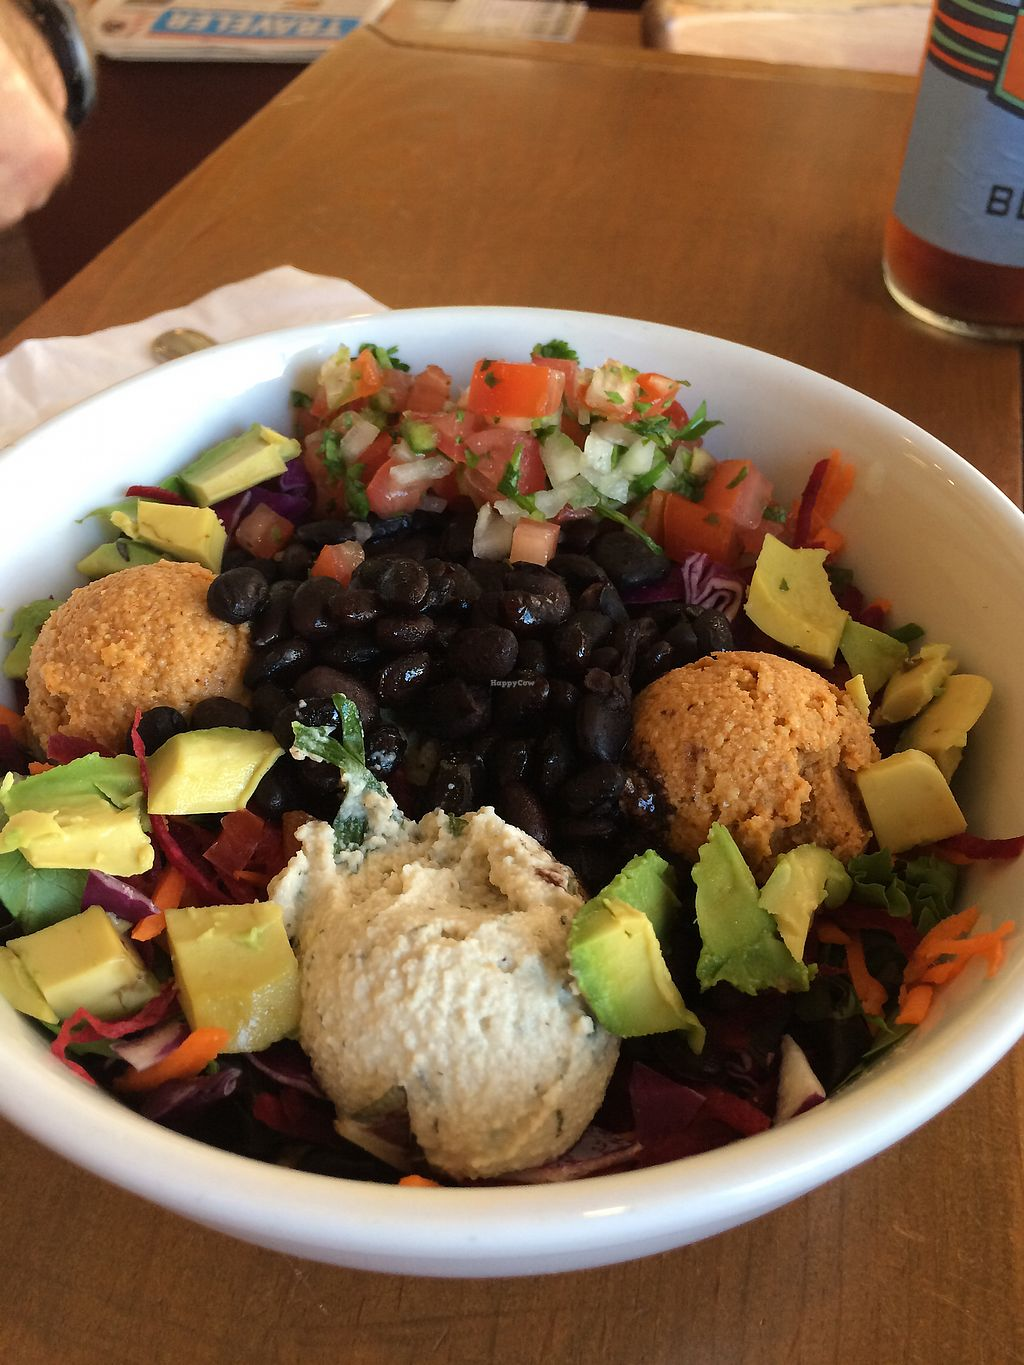 """Photo of Right Path Organic Cafe  by <a href=""""/members/profile/Indyk"""">Indyk</a> <br/>Perspective Bowl <br/> July 22, 2017  - <a href='/contact/abuse/image/65514/283269'>Report</a>"""